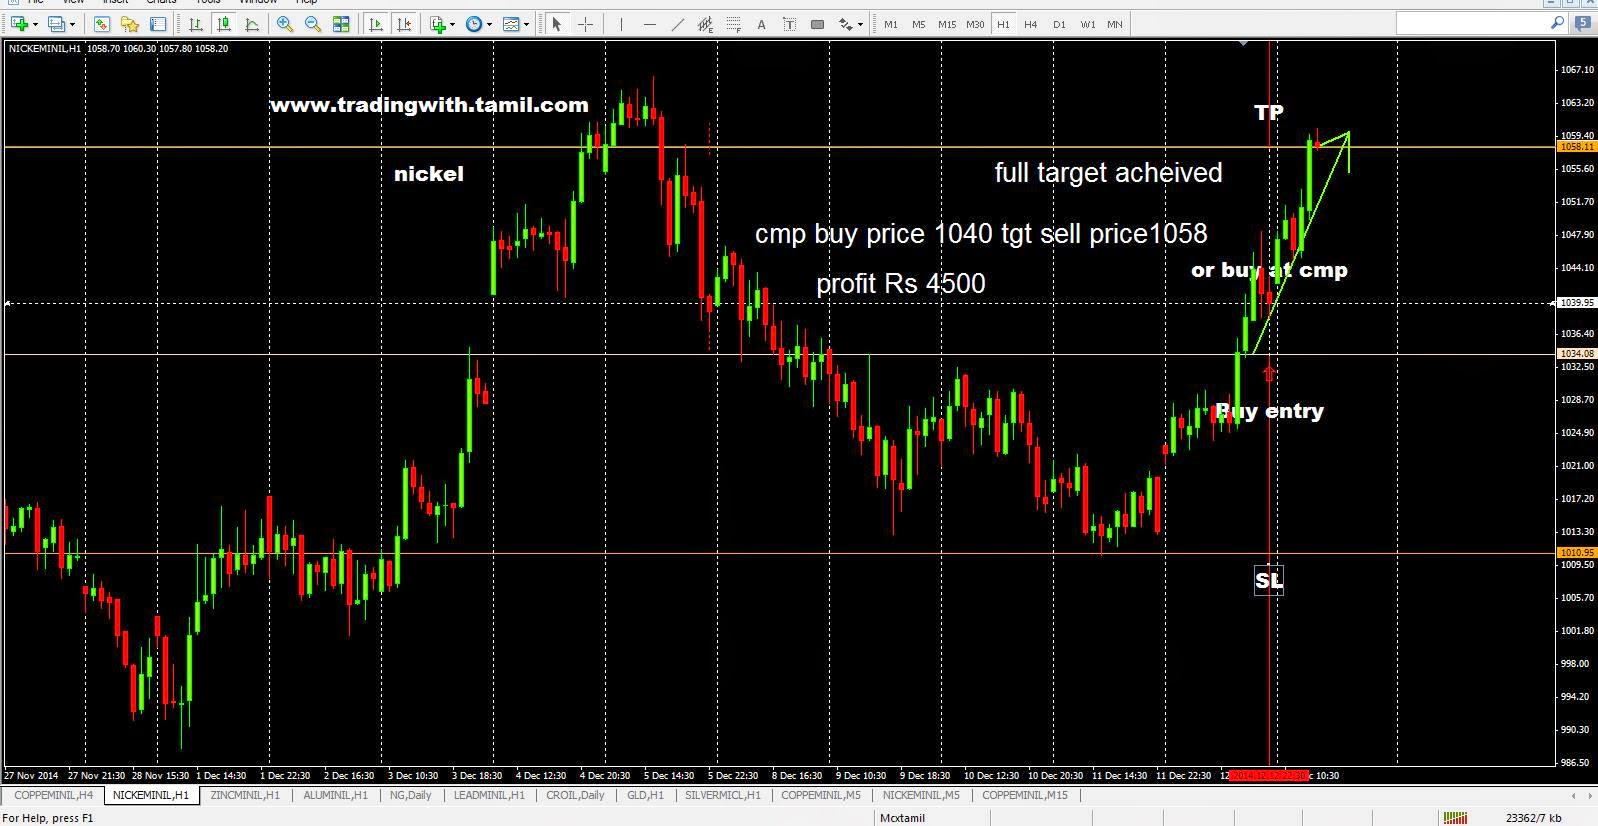 How Trade Forex,How To Earn Money In Forex,Buy Forex Signals,Currency Trading Markets,How To Trade Forex And Make Money